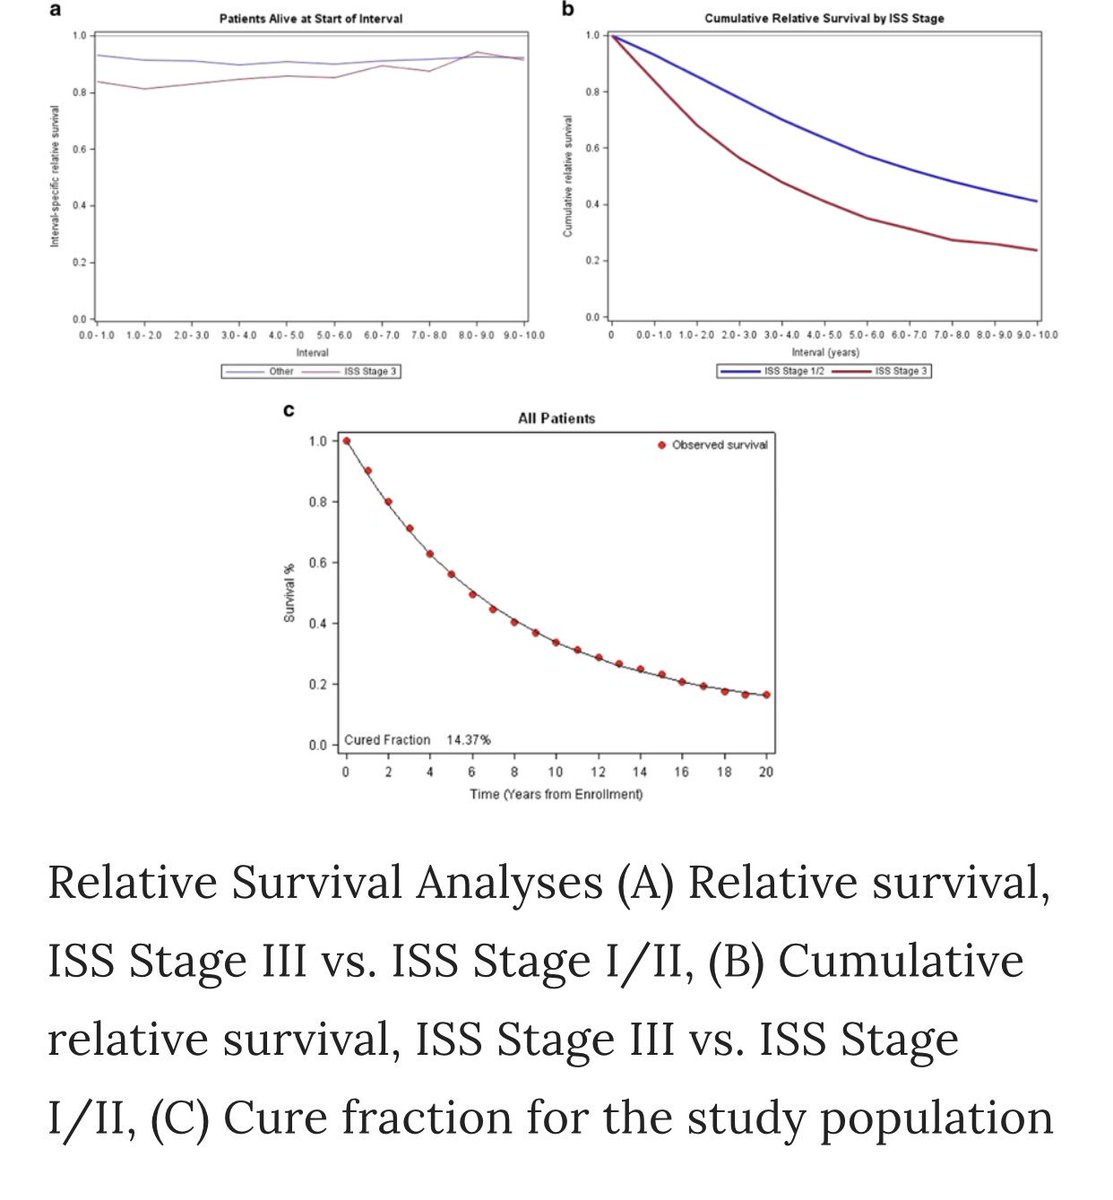 Blood Cancer Journal #BCJ Long term survival of 7291 pts on myeloma trials (90% enrolled pre-thalidomide): ~15% 20year survival; rate will be much higher now. Caveat: Results apply only to transplant eligible pts with good performance status @szusmani   https://www.nature.com/articles/s41408-018-0155-7 …